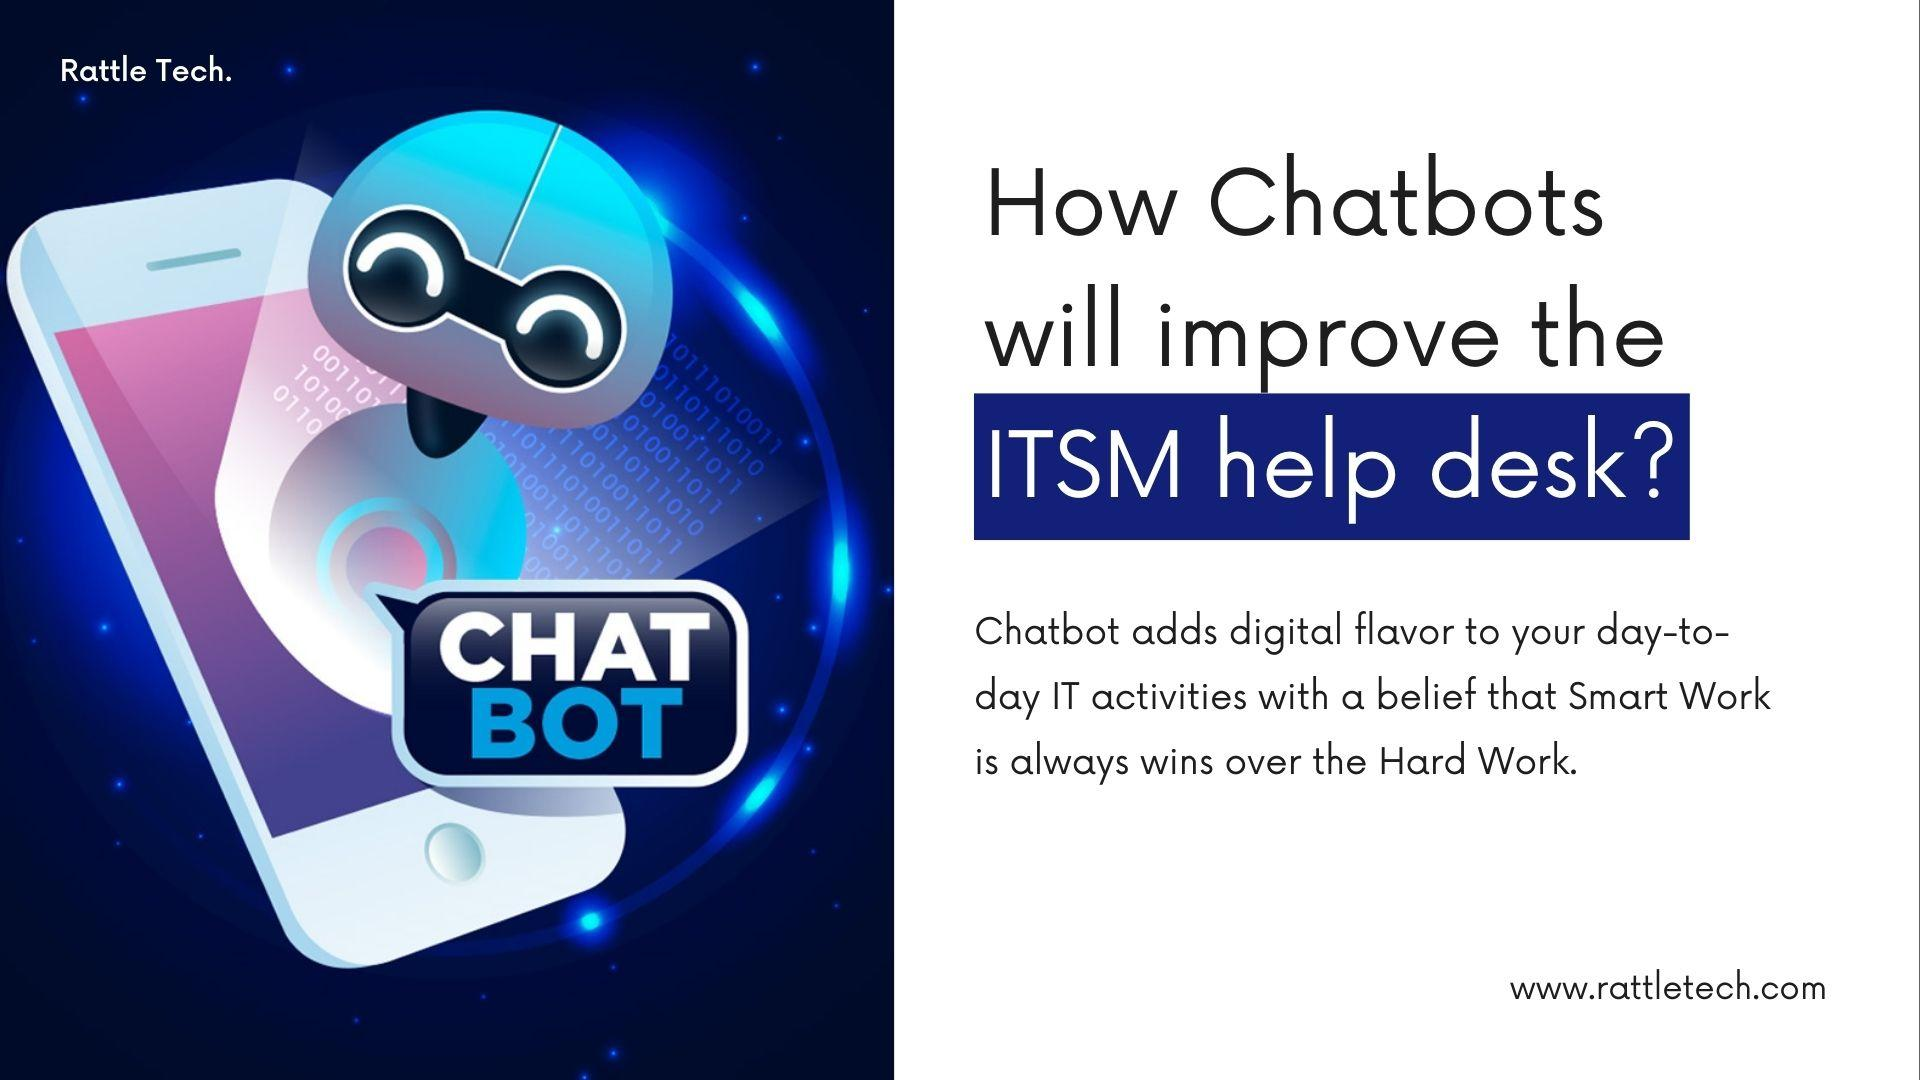 How Chatbots will improve the ITSM help desk